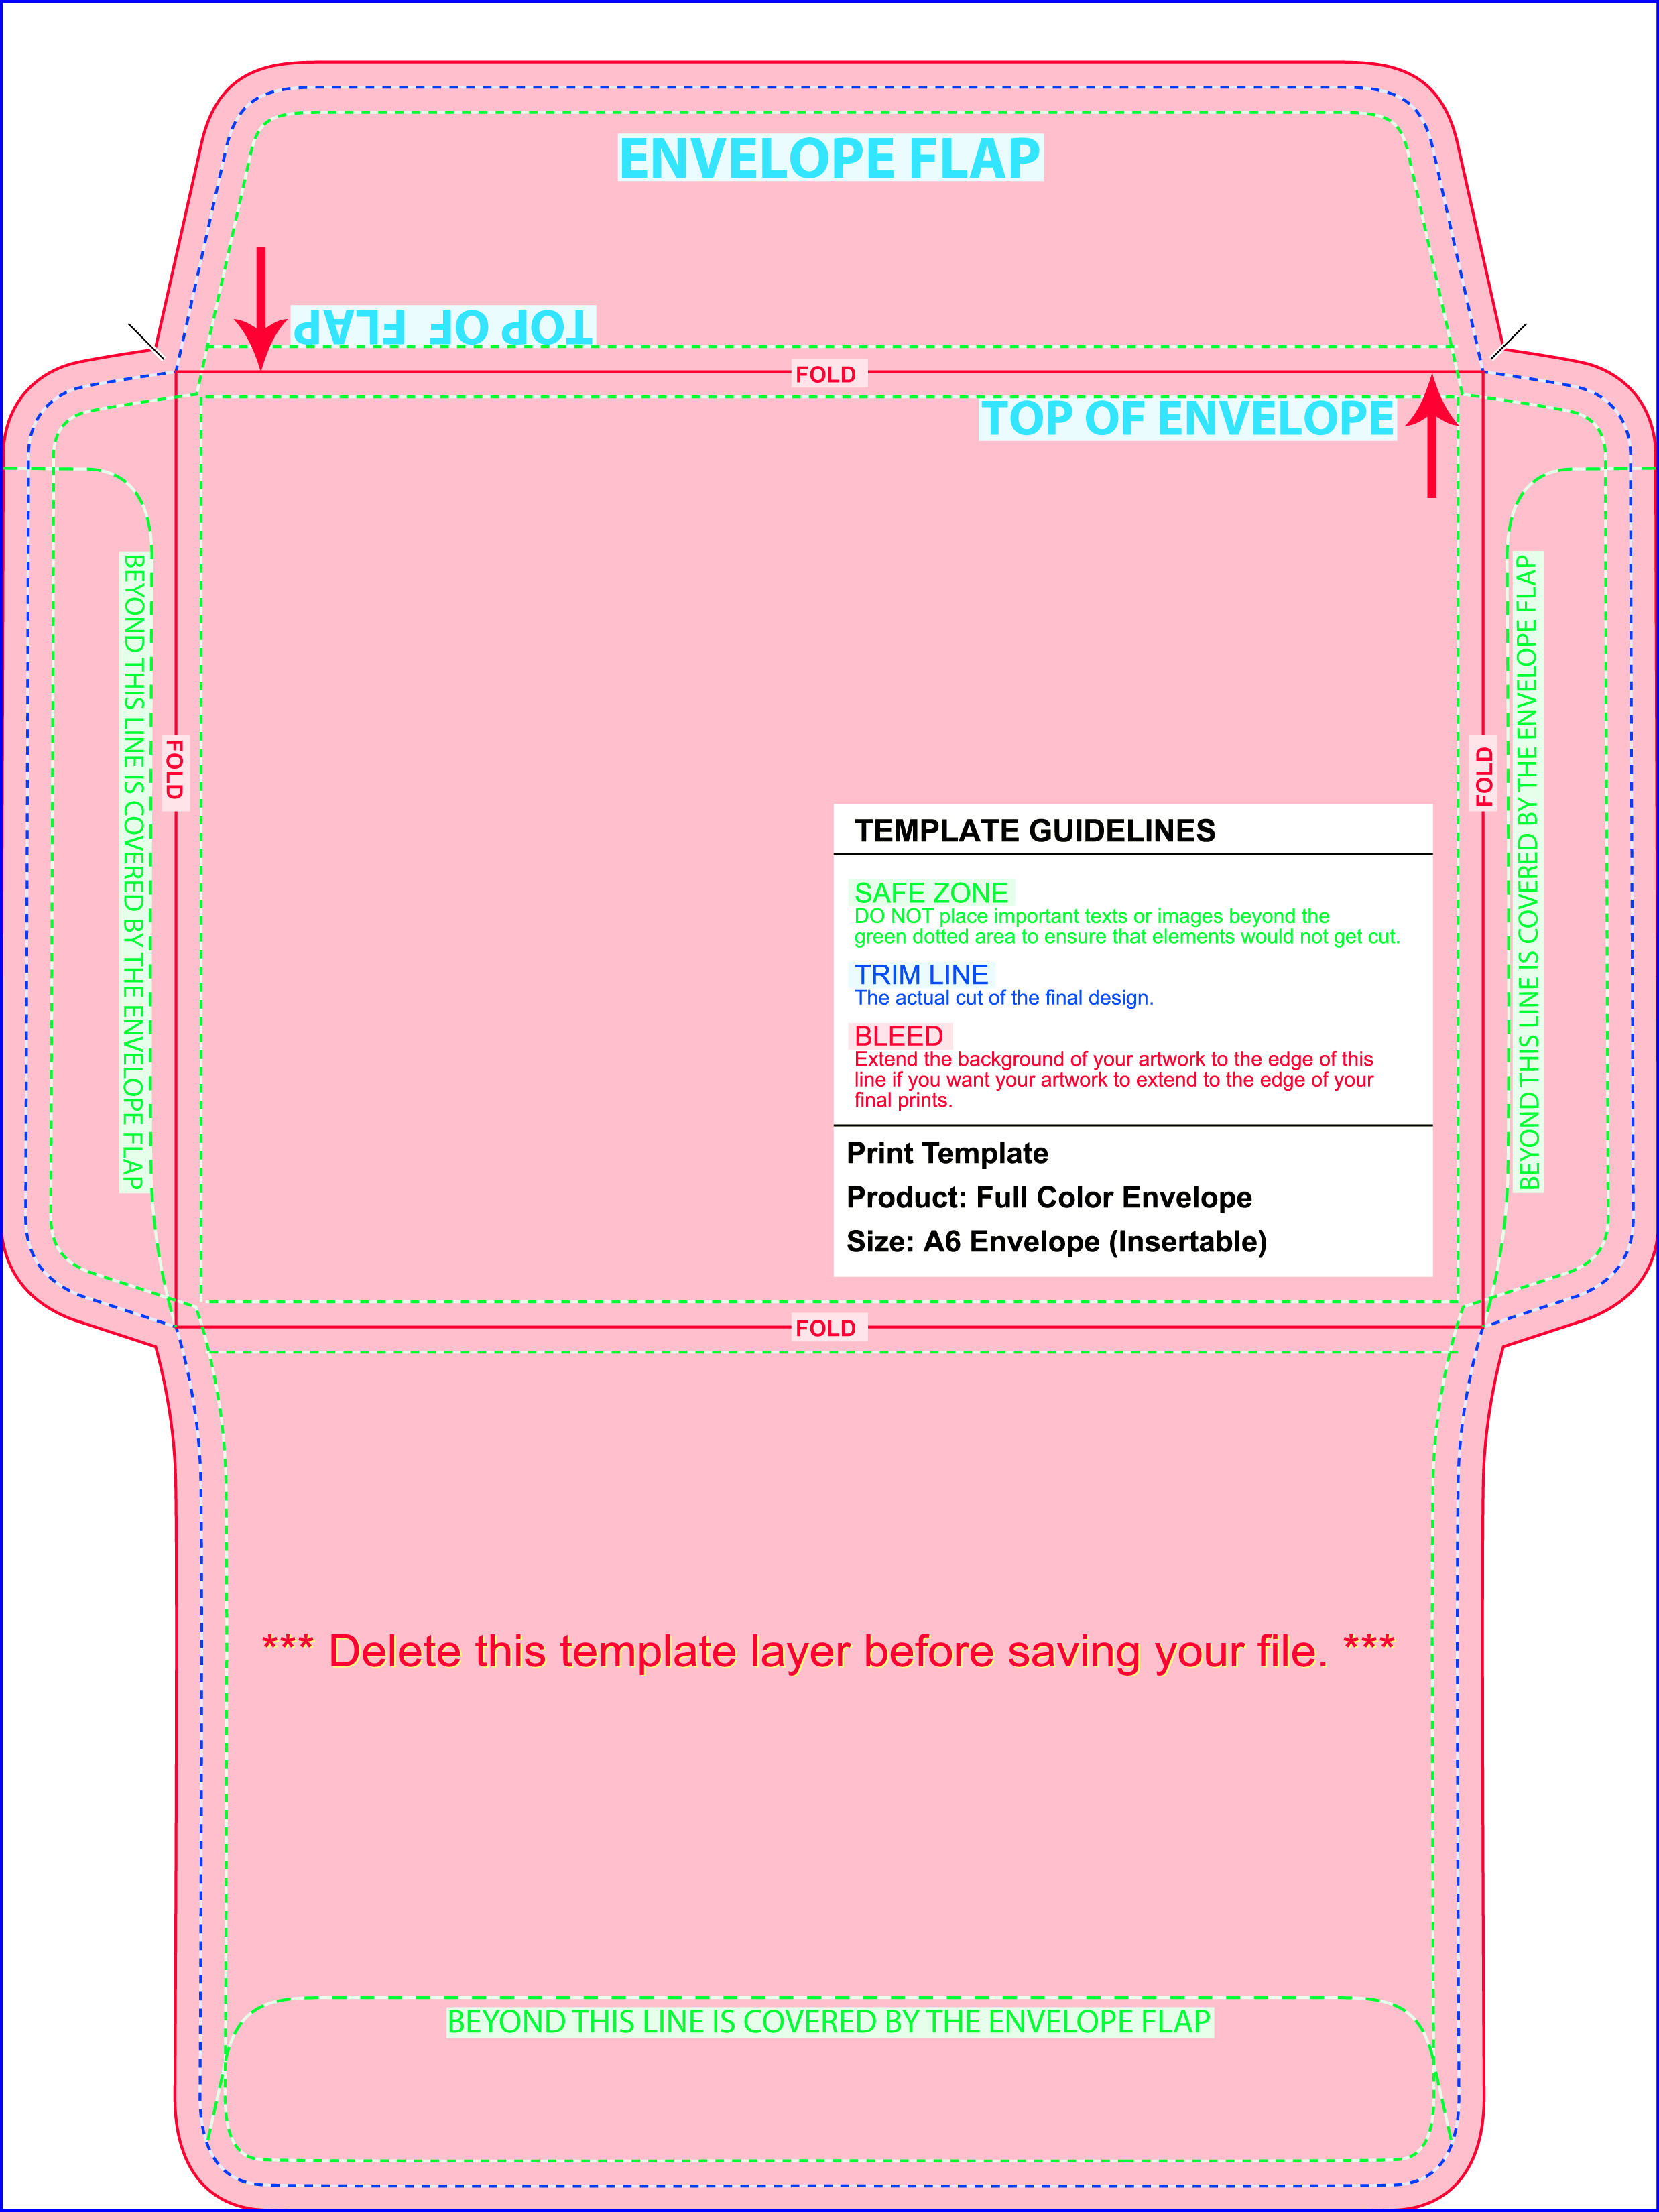 A Envelope Printing Color And FullColor NextDayFlyers - A6 envelope printing template